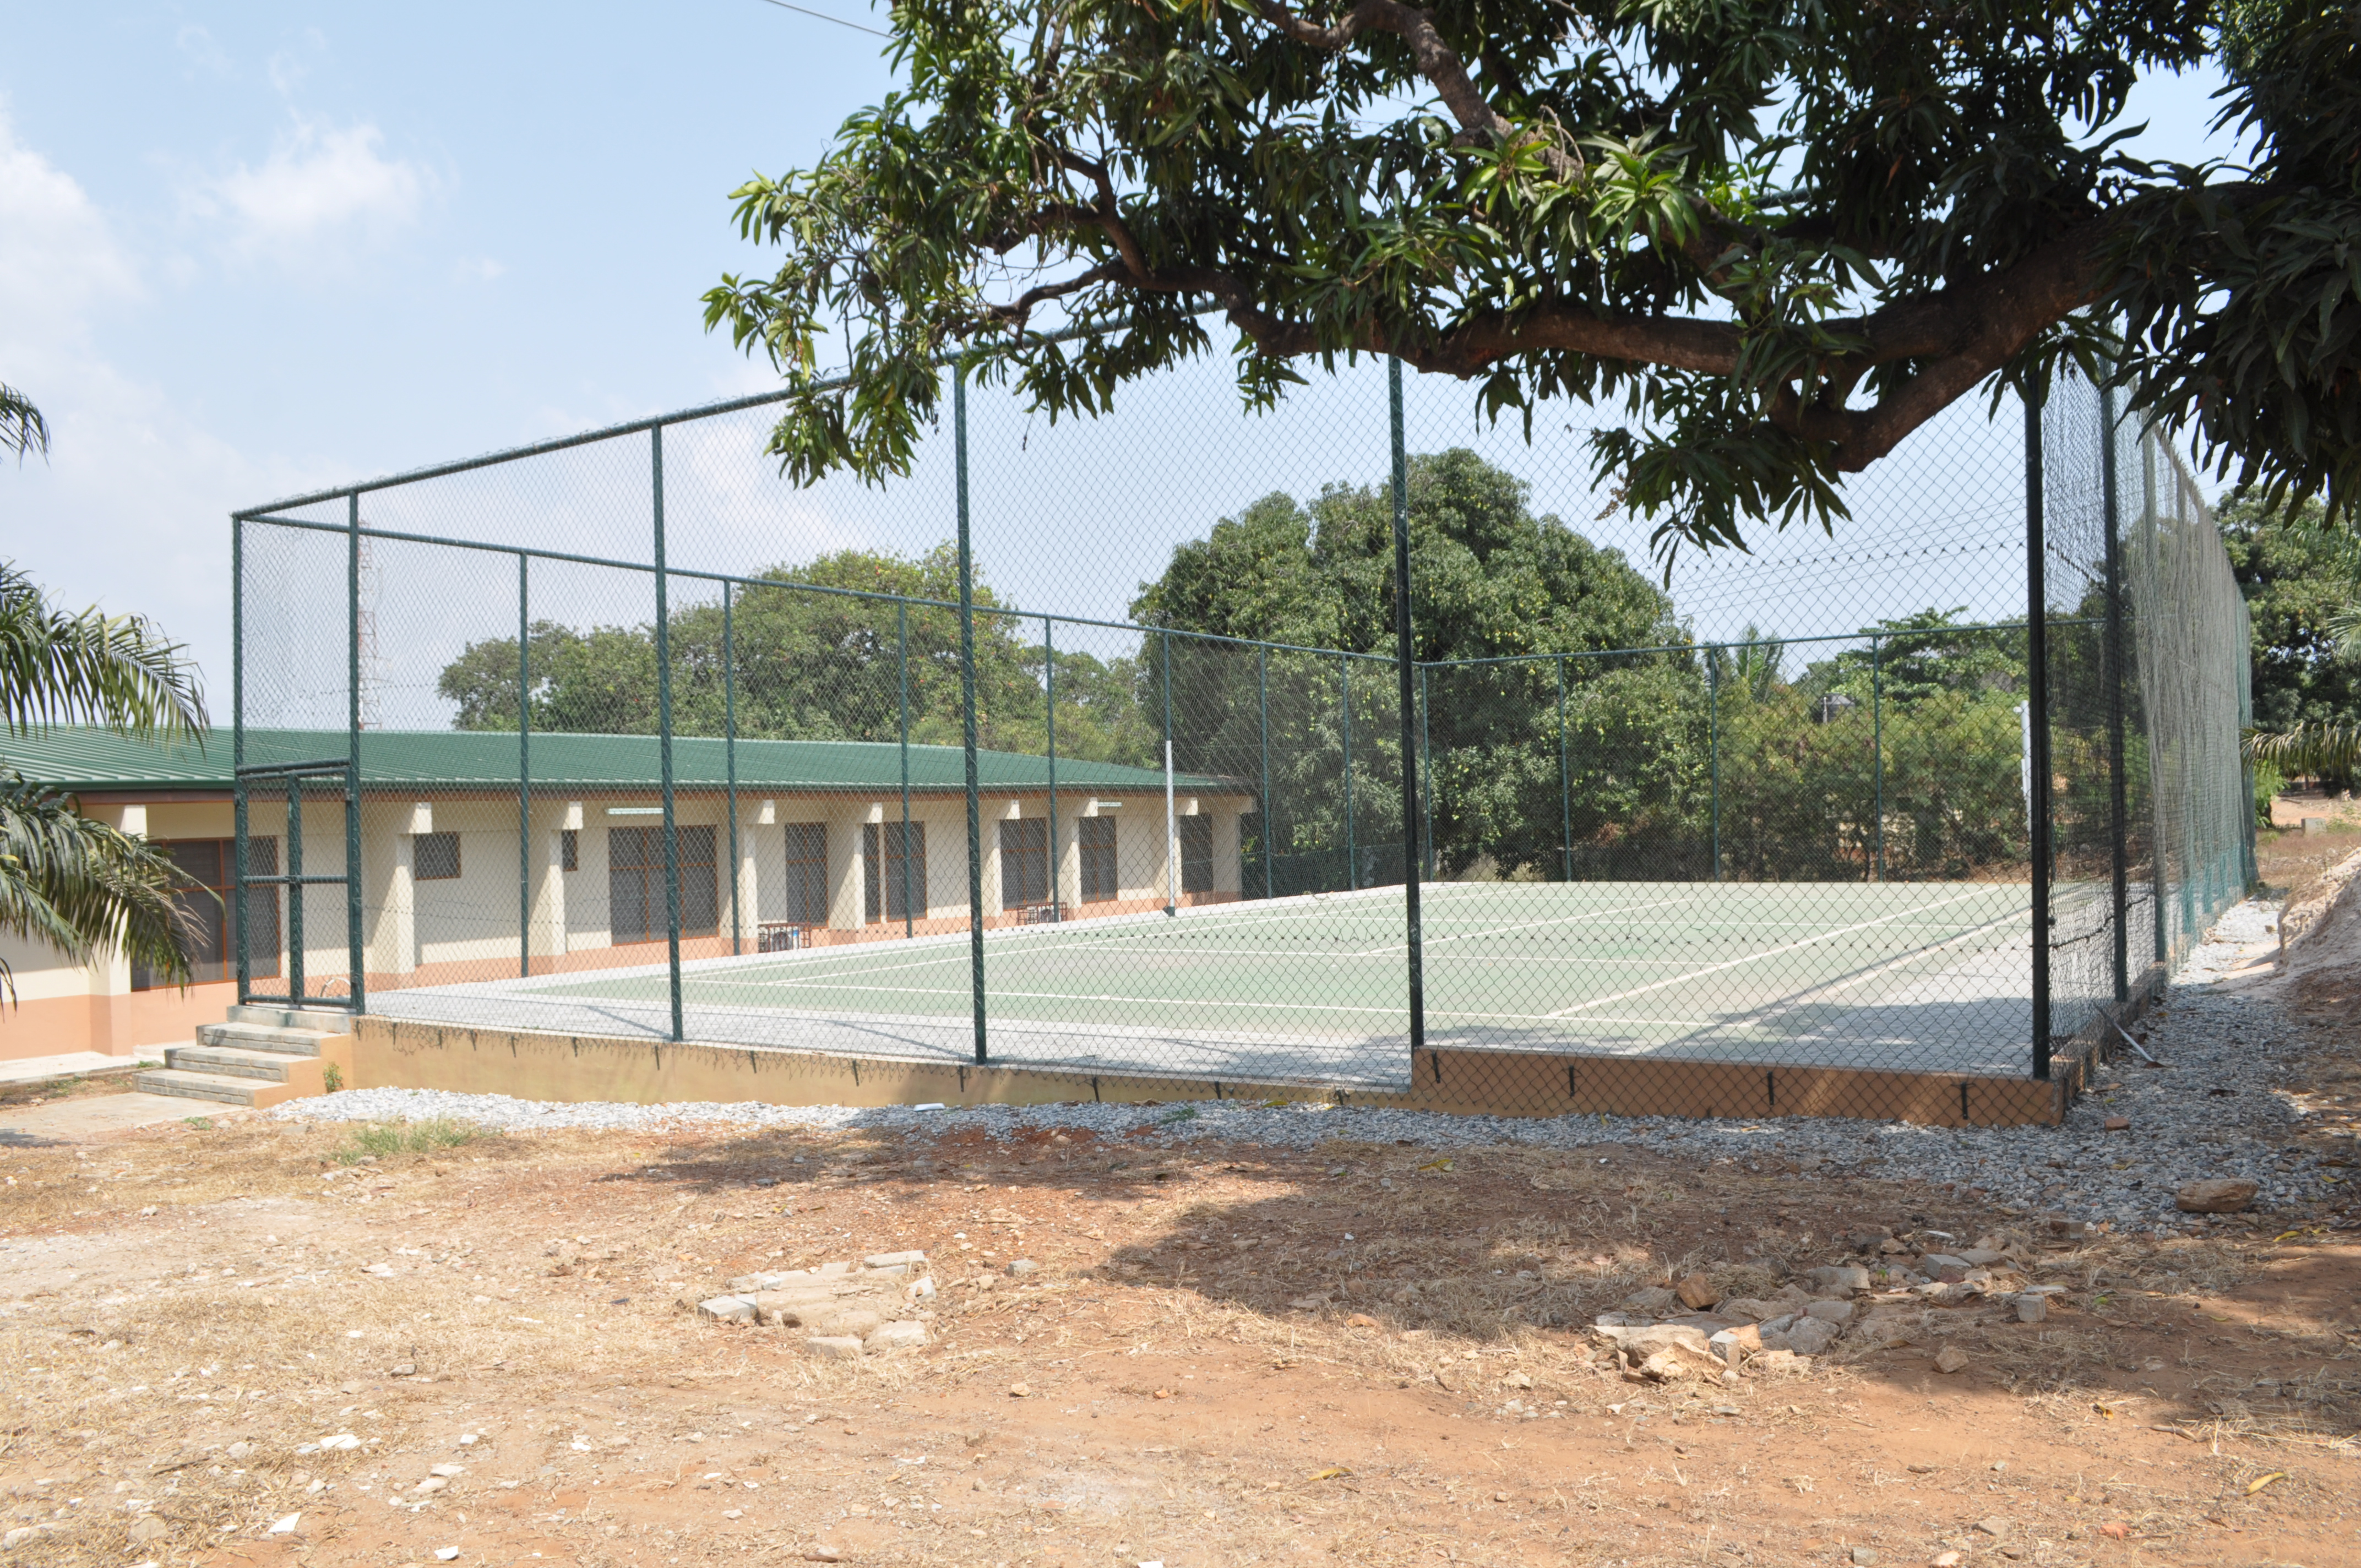 A view of the Tennis Court at the REHABILATION CENTRE